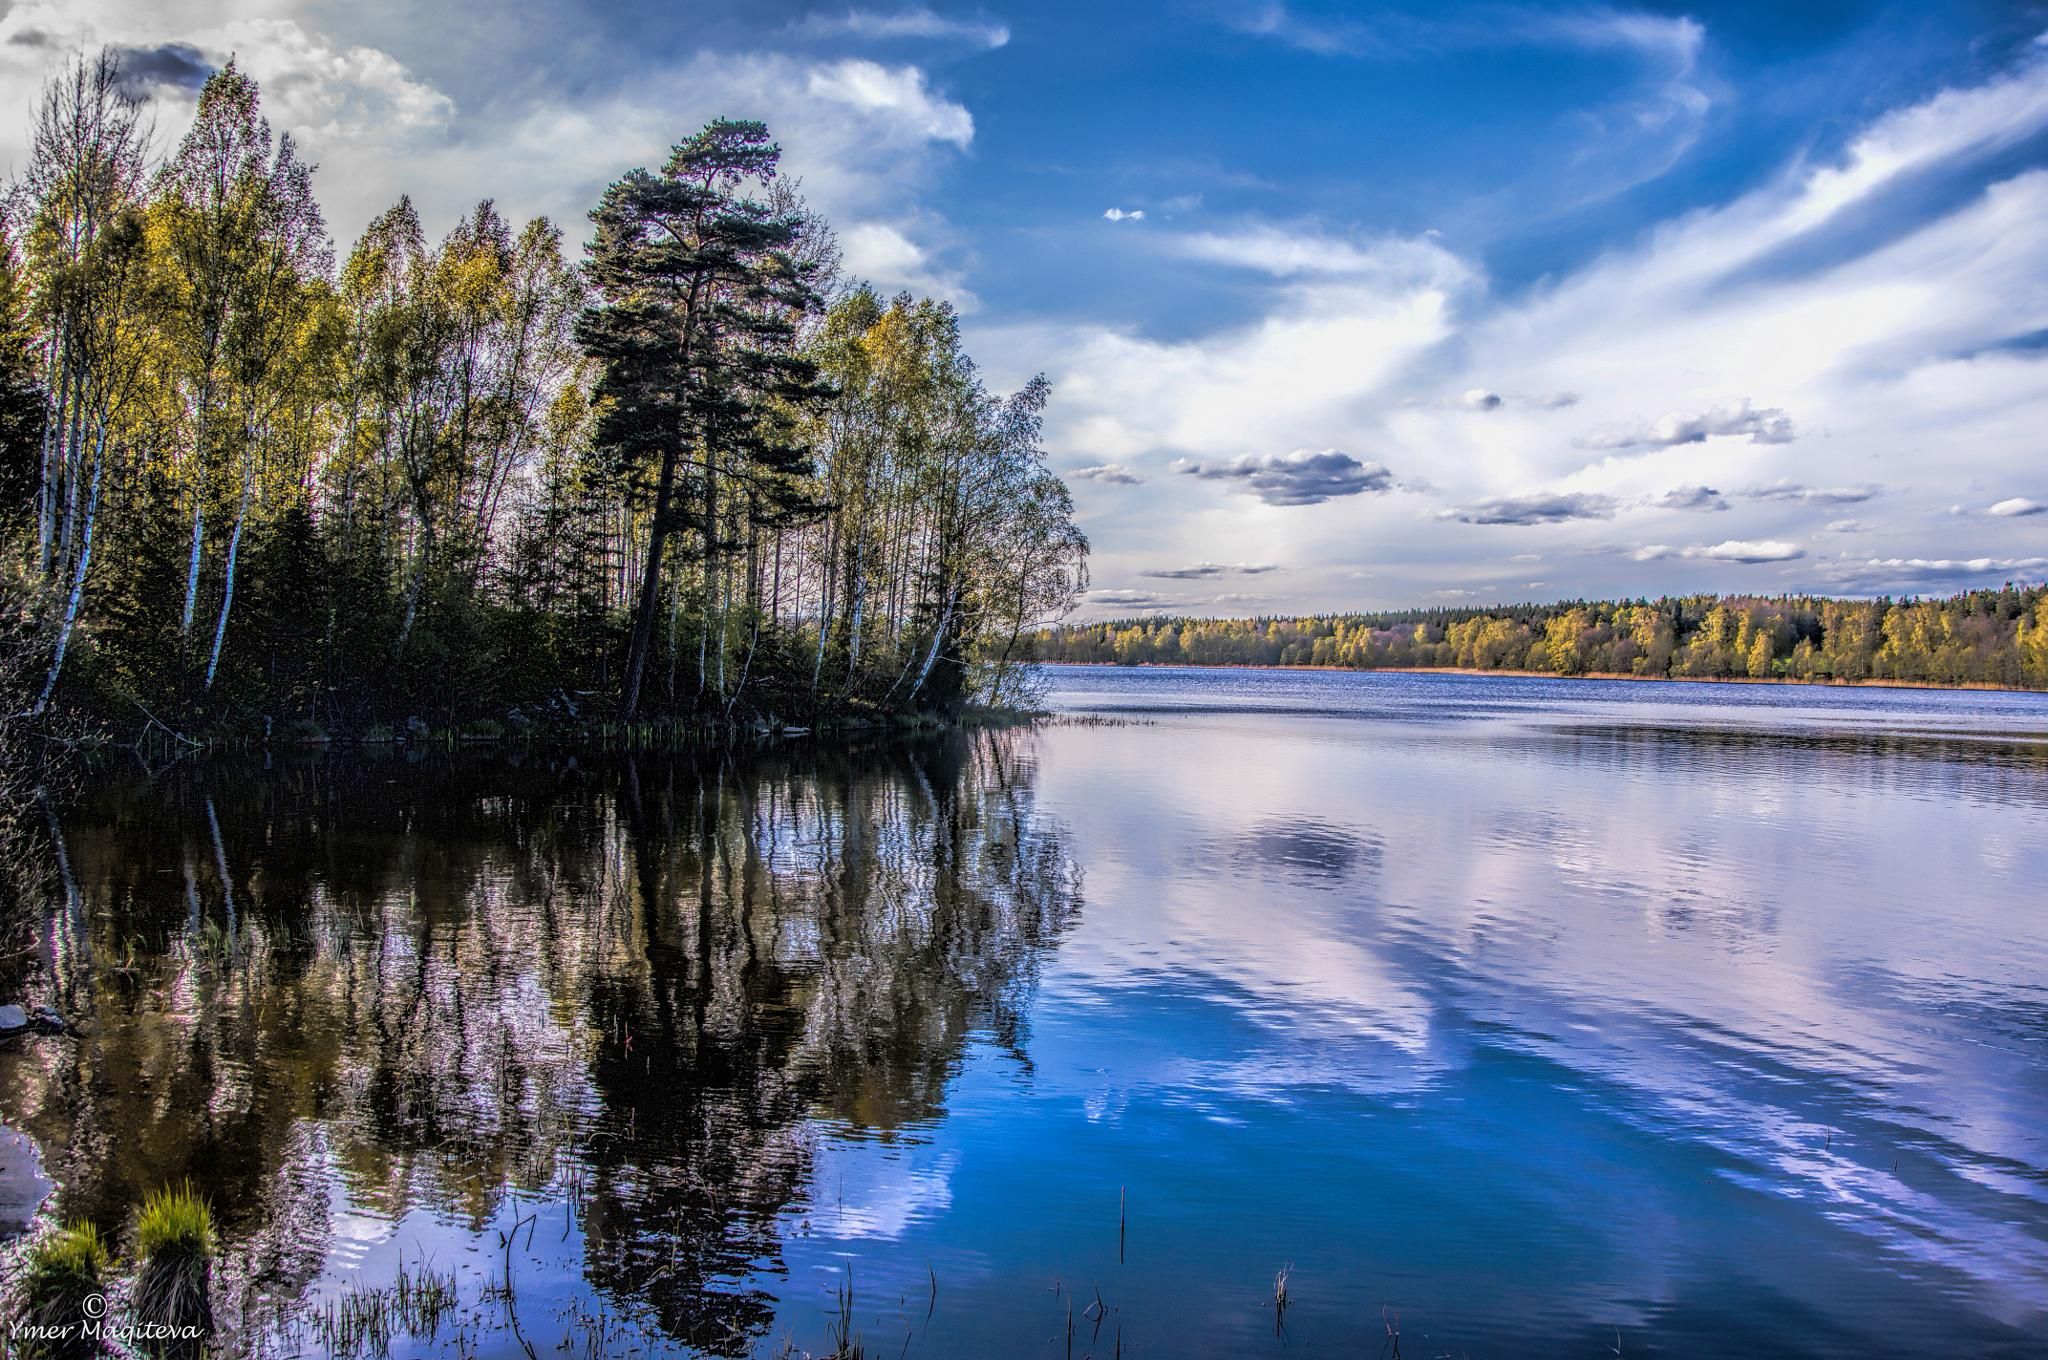 Lake by Ymer